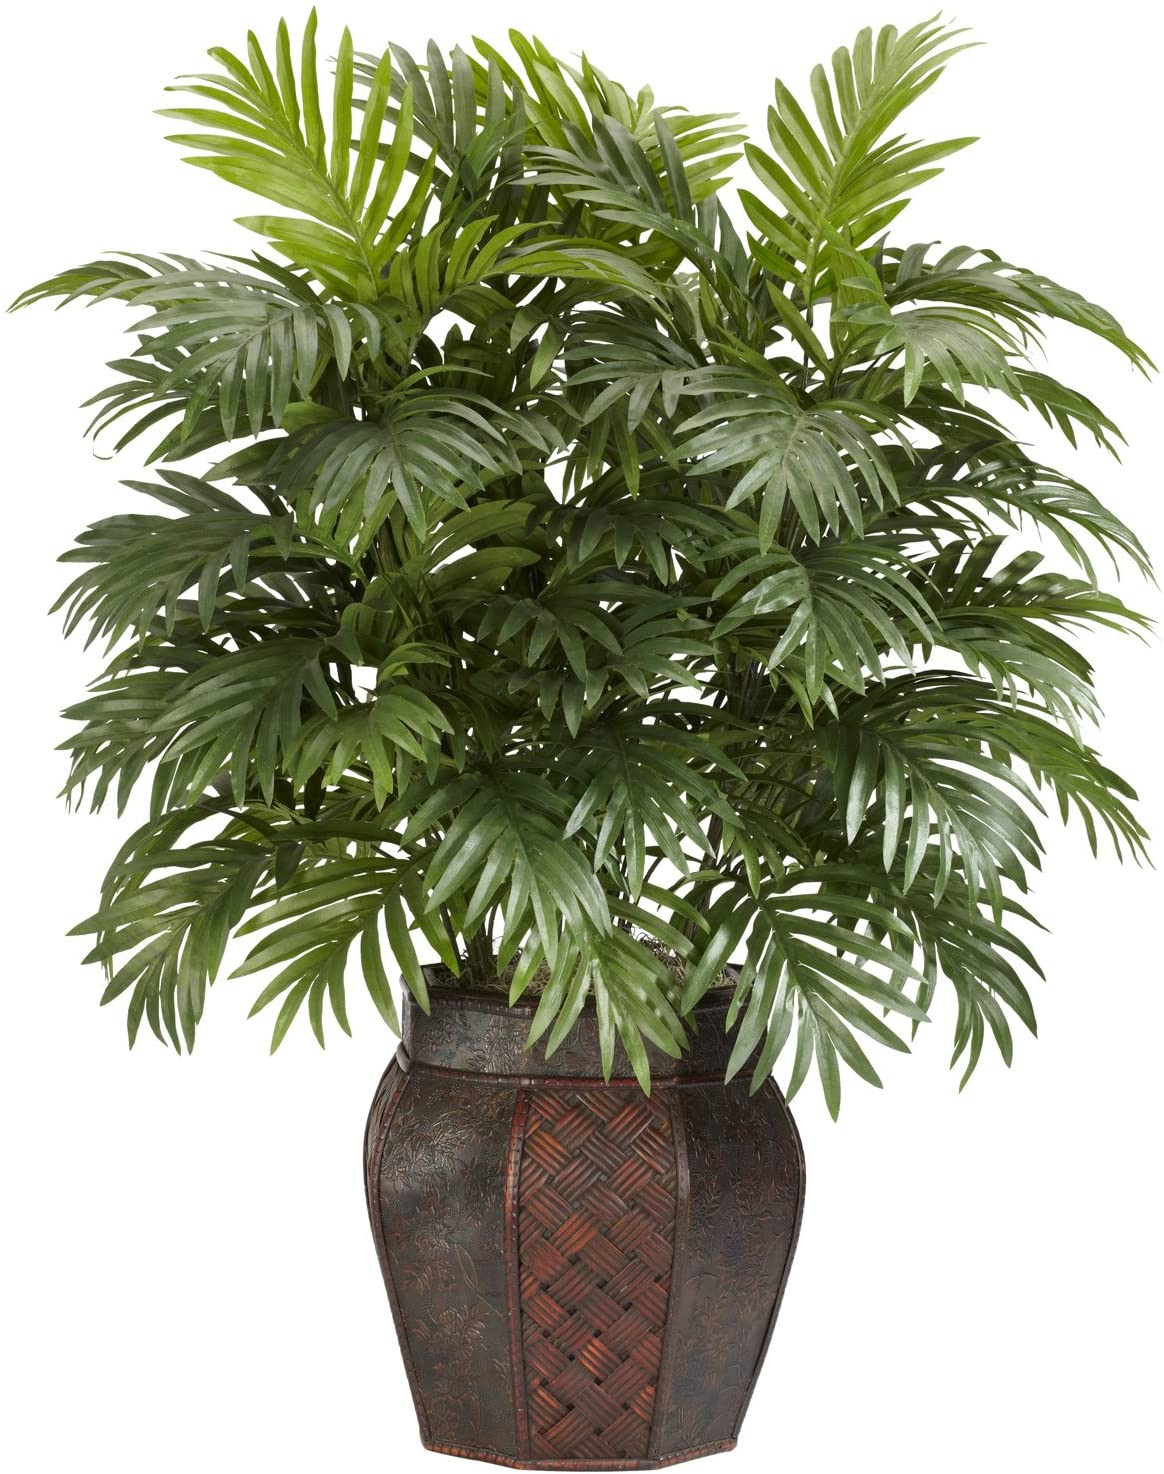 Amazon Com Nearly Natural Areca Palm With Vase Silk Artificial Plant 42 X 11 X 11 Green 6651 Home Kitchen